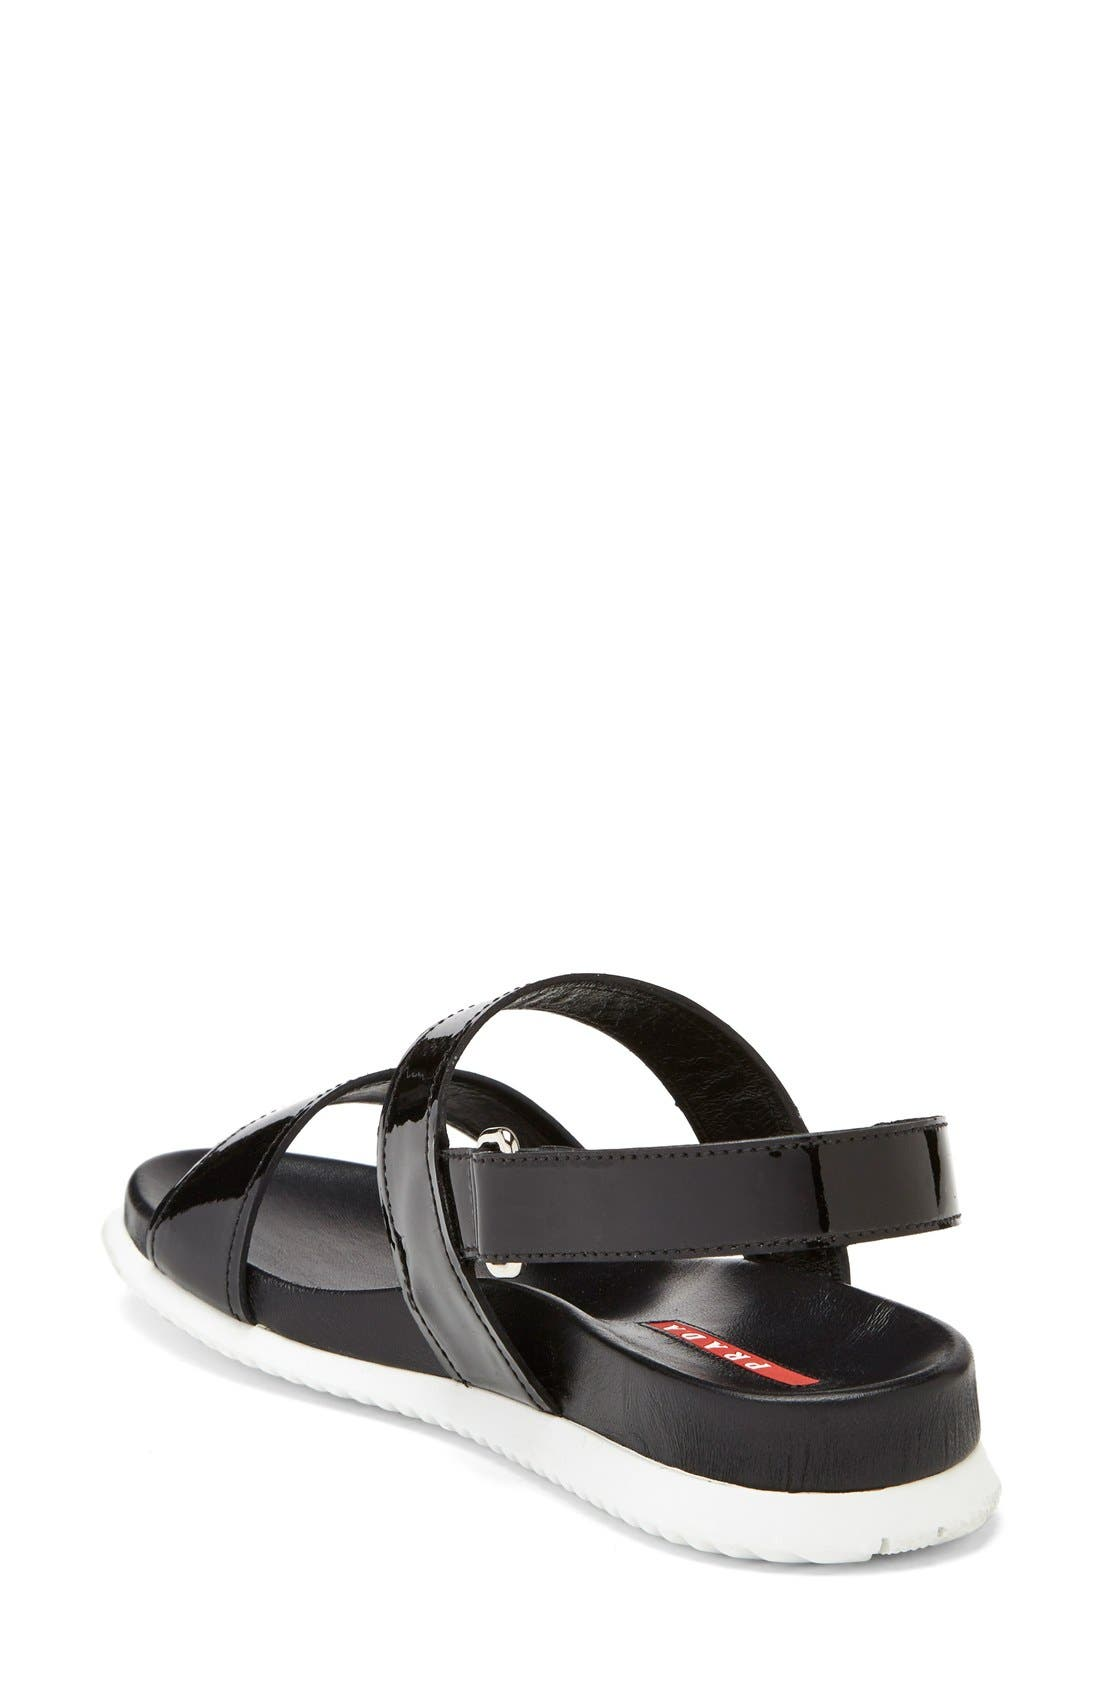 Alternate Image 2  - Prada Sport Sandal (Women)